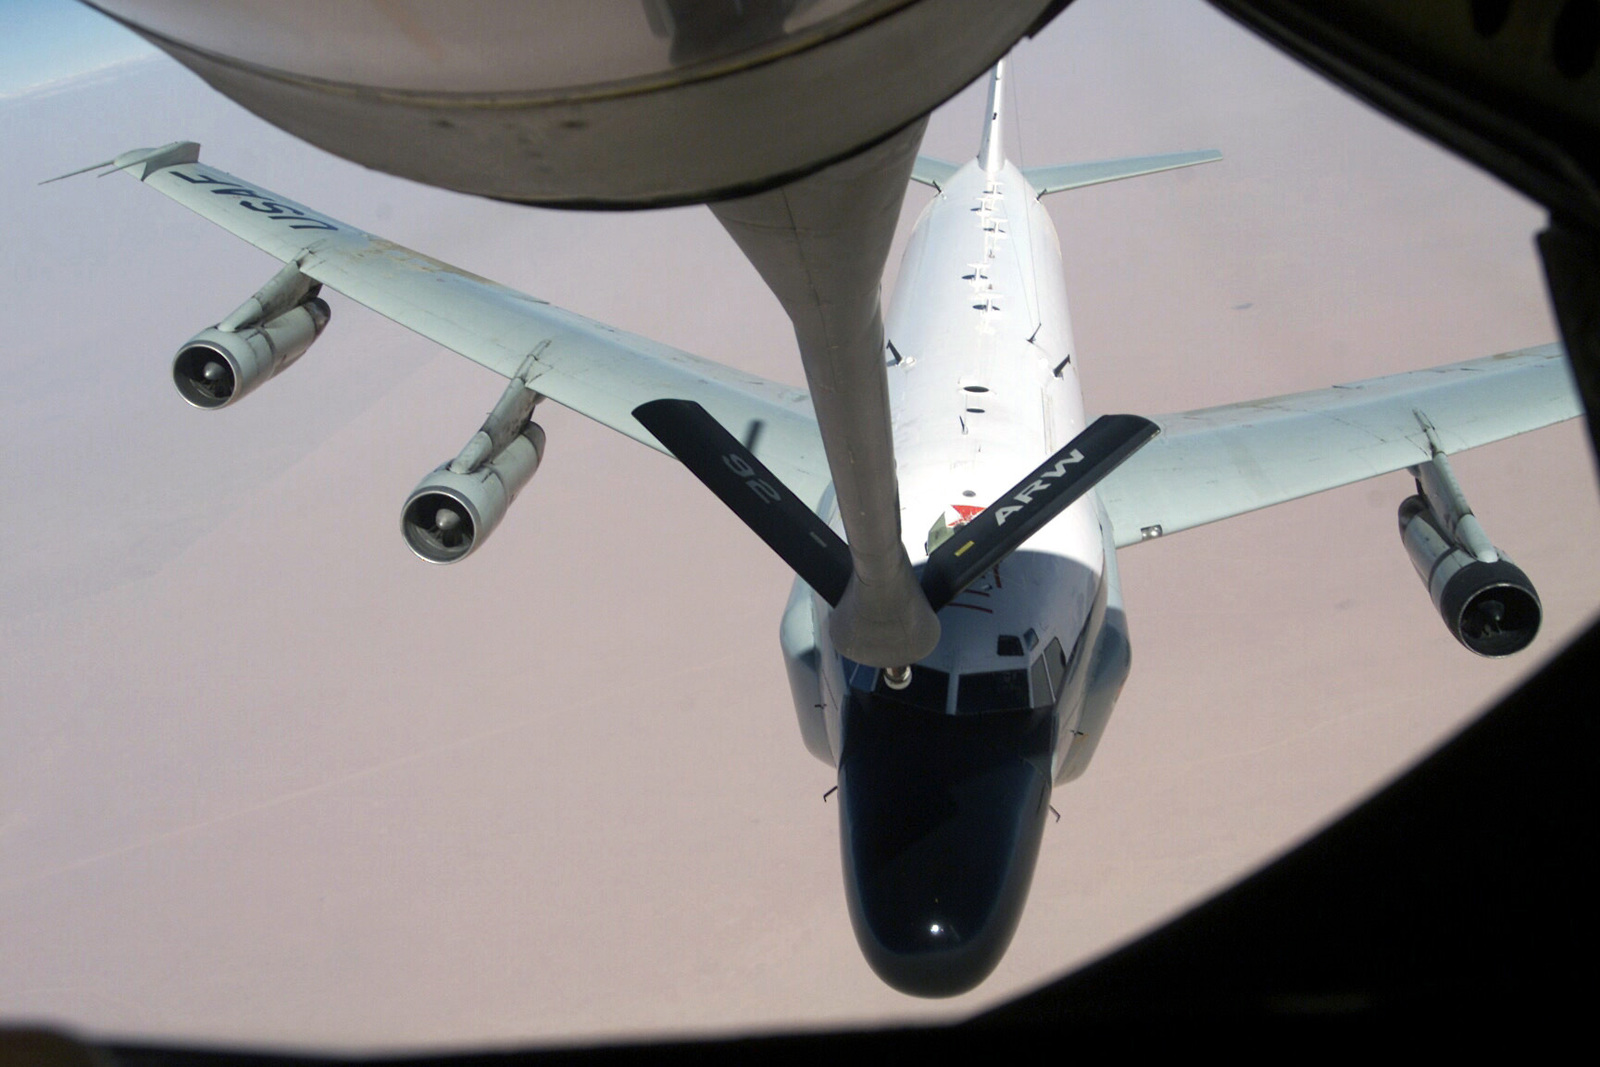 A US Air Force (USAF) RC-135V Rivet Joint aircraft assigned to the 763rd Expeditionary Reconnaissance Squadron (RES) approached the extended refueling arm of a USAF KC-135 Stratotanker aircraft assigned to the 92nd Air Refueling Wing (ARW) during aerial refueling conducted in support of Operation SOUTHERN WATCH